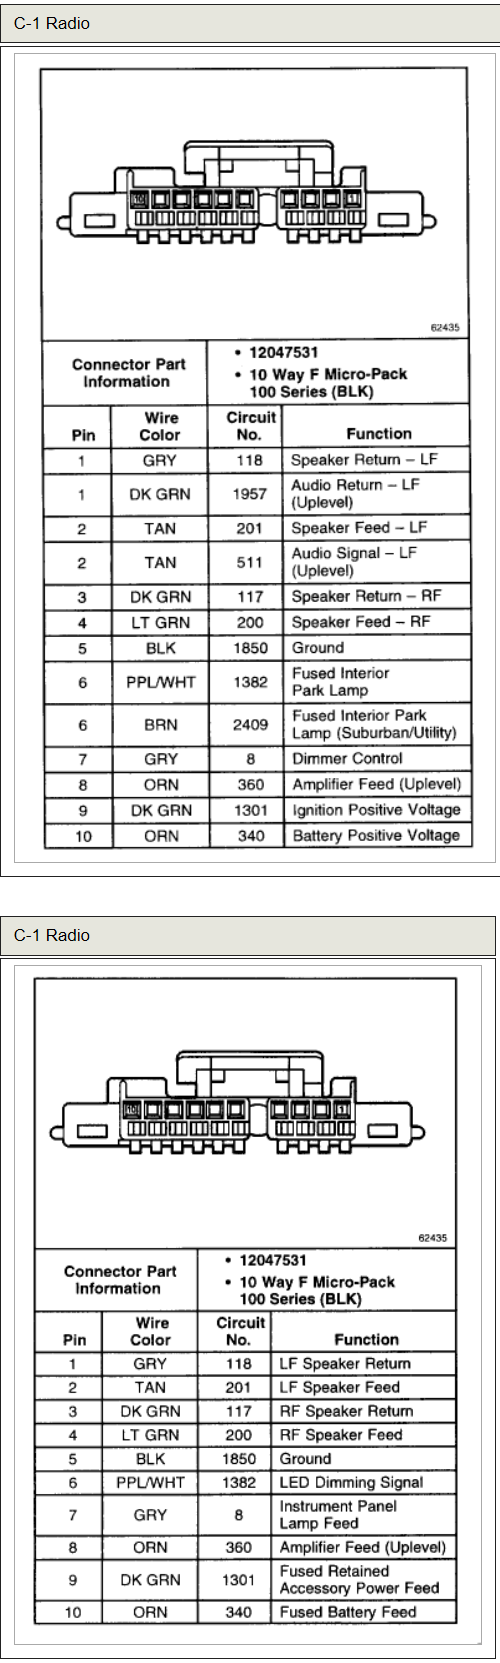 Chevrolet Tahoe LS 2000 stereo wiring connector 2 chevrolet car radio stereo audio wiring diagram autoradio stereo wiring diagram for 2002 chevy silverado at reclaimingppi.co